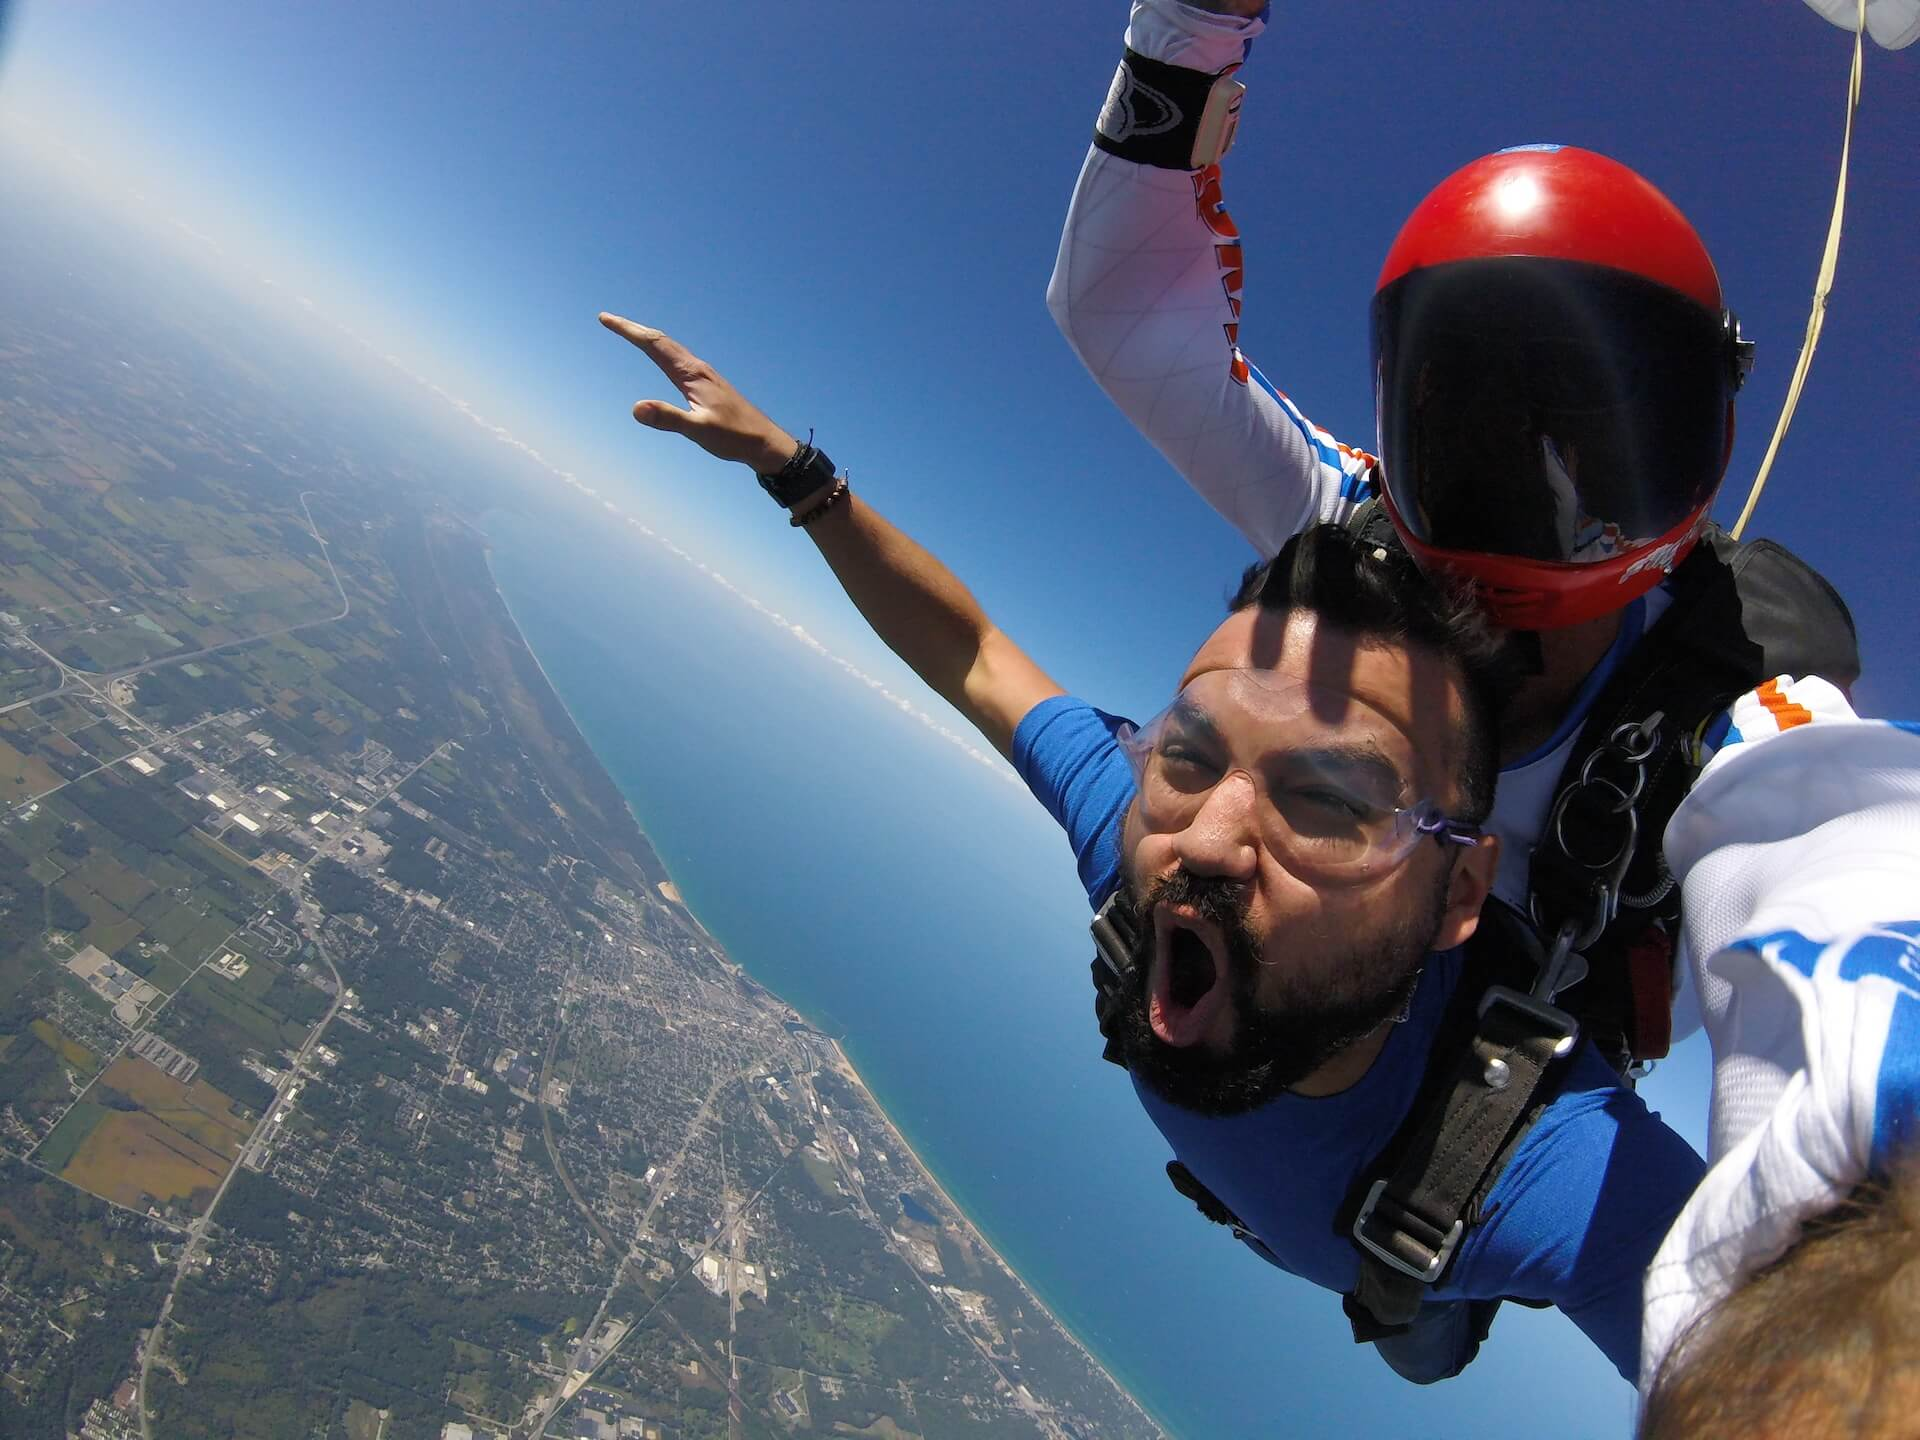 Skydive Windy City Chicago | Skydive Chicago - Lessons & More